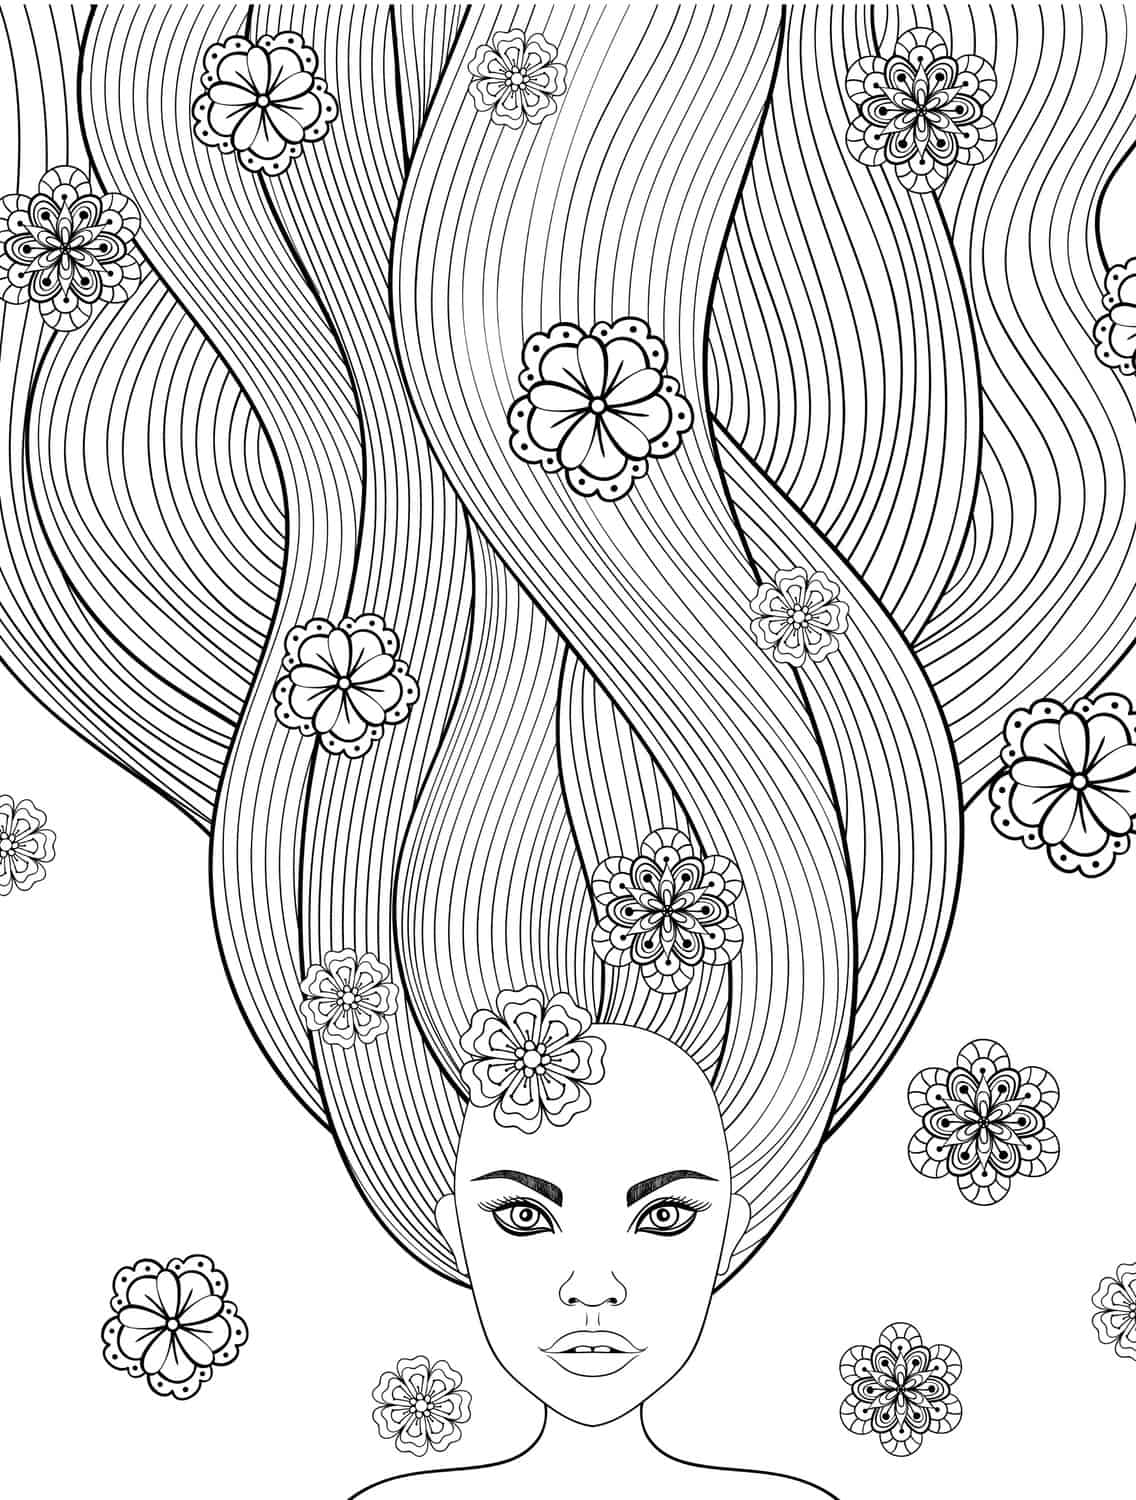 Free Printable Adult Coloring Pages With Long Hair Girls Print